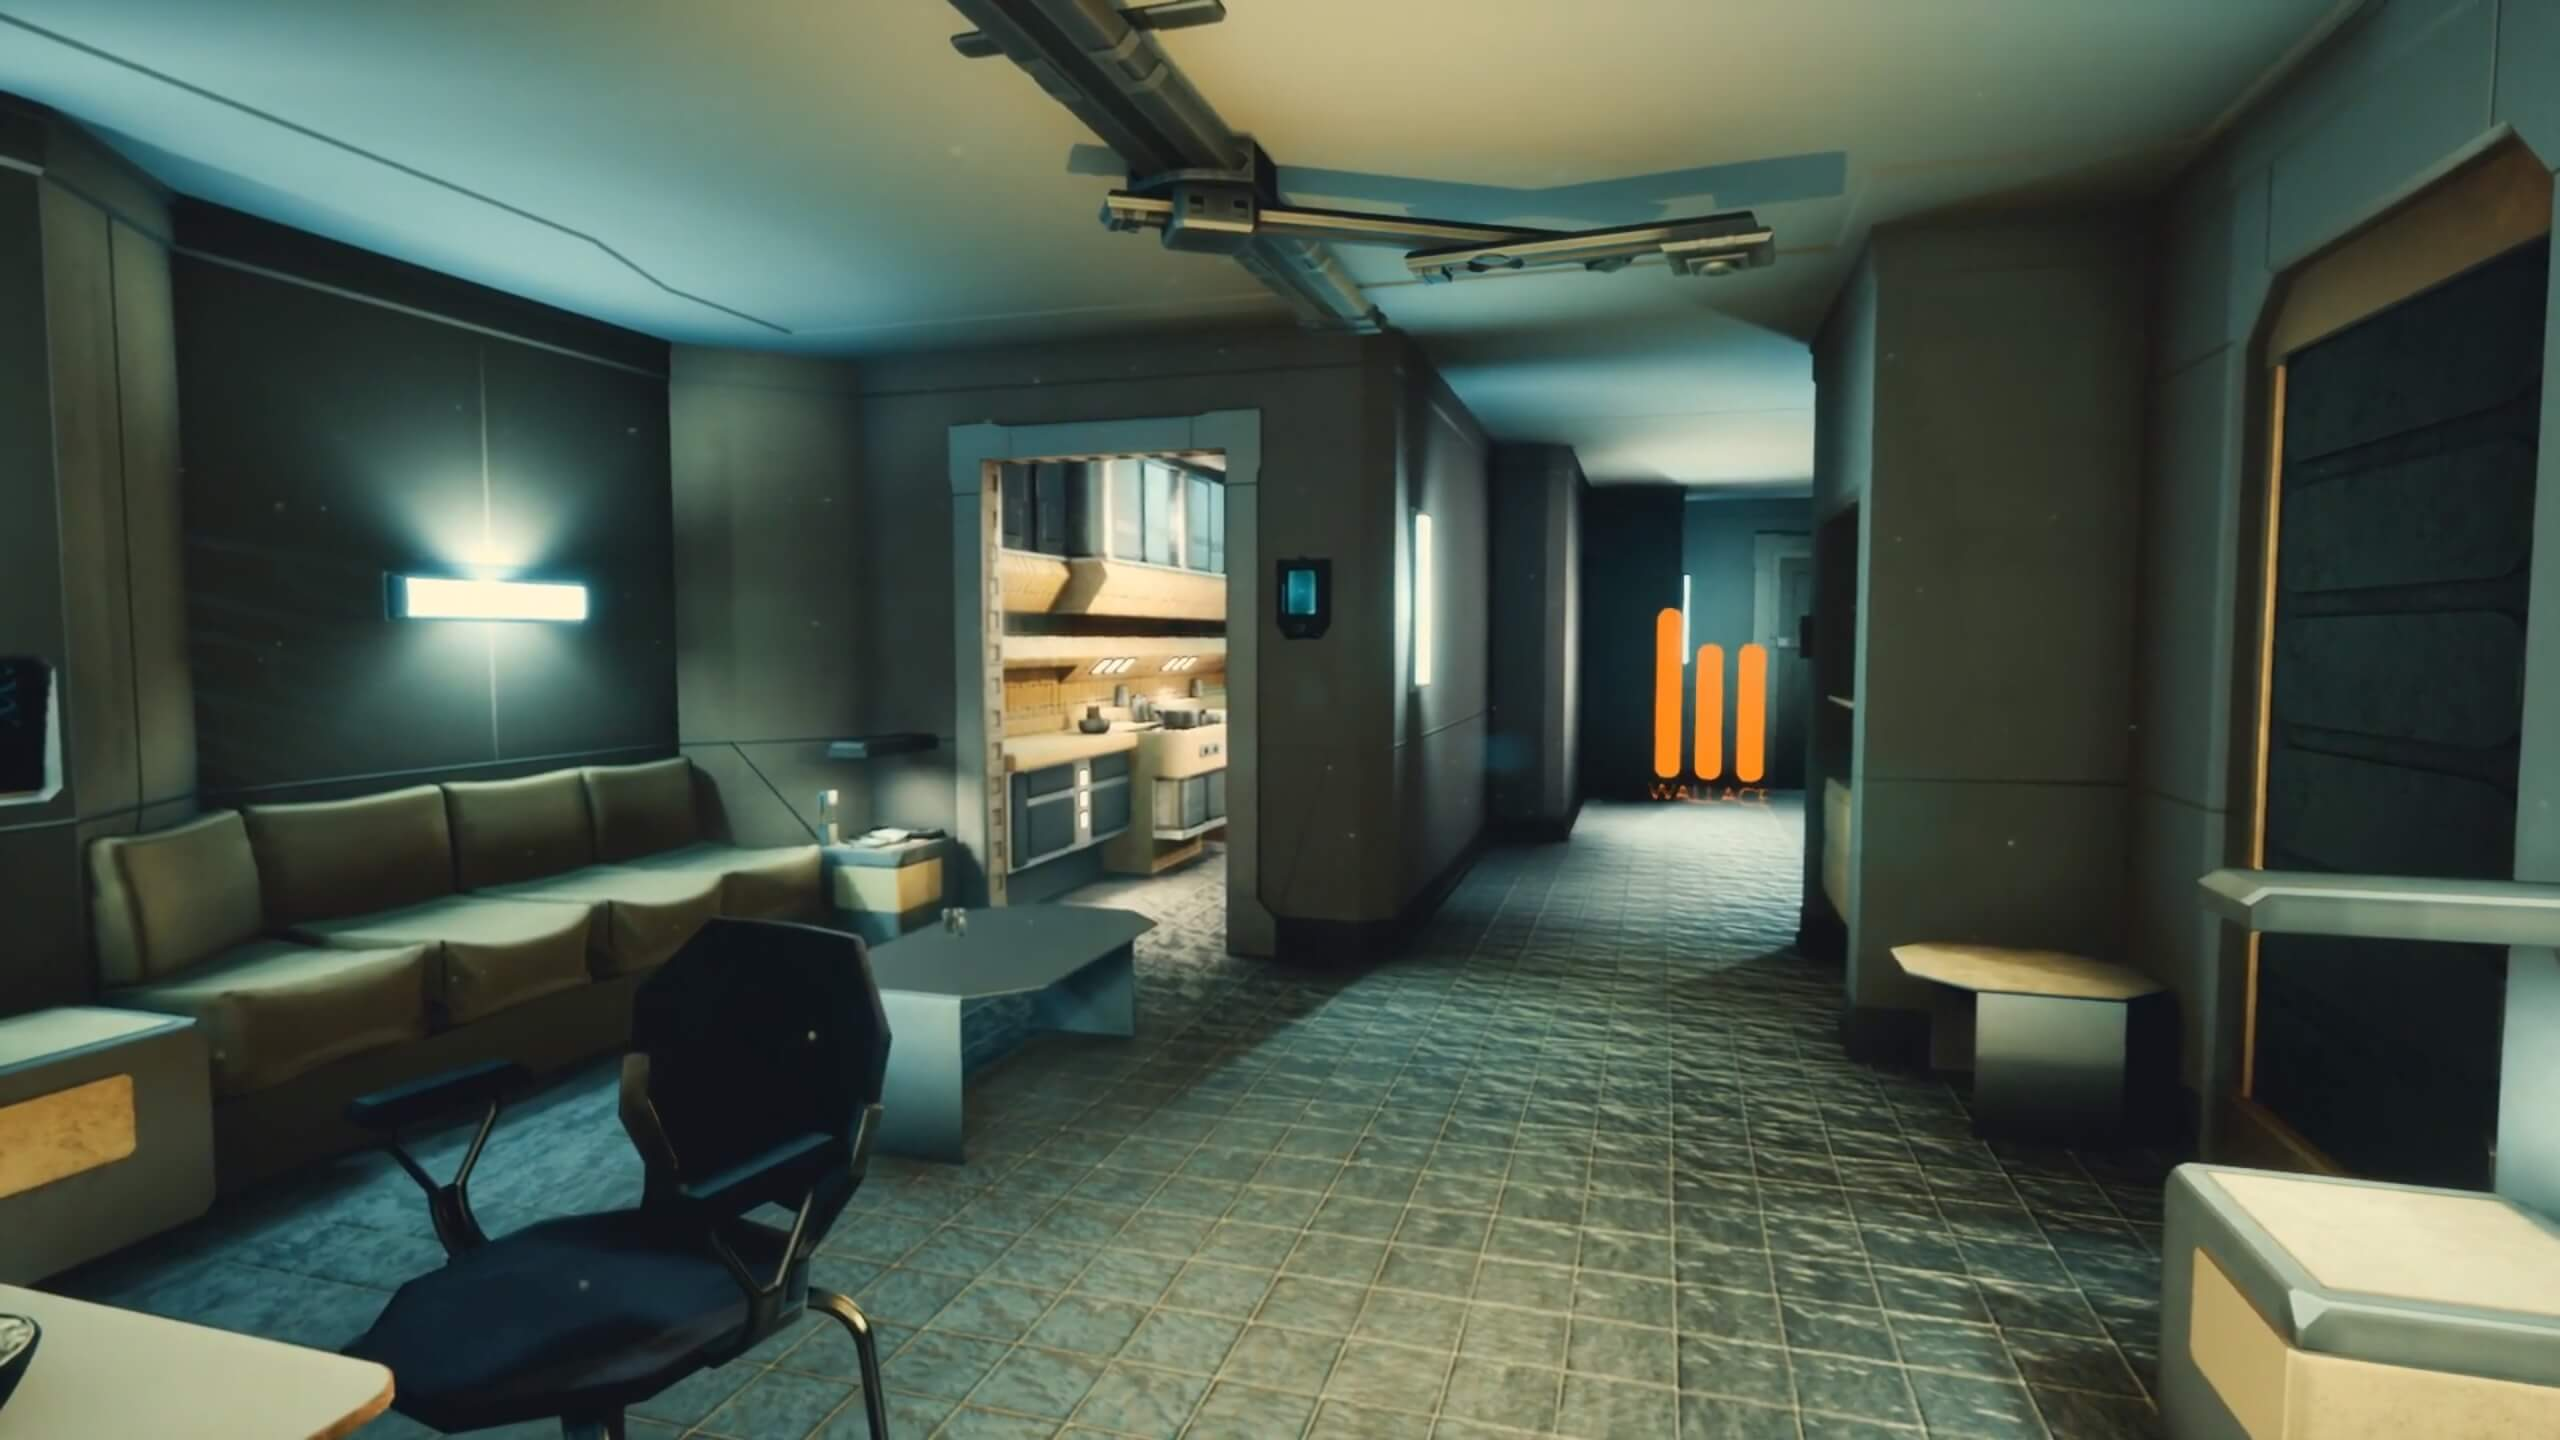 K's apartment from Blade Runner 2049 recreated in Unreal